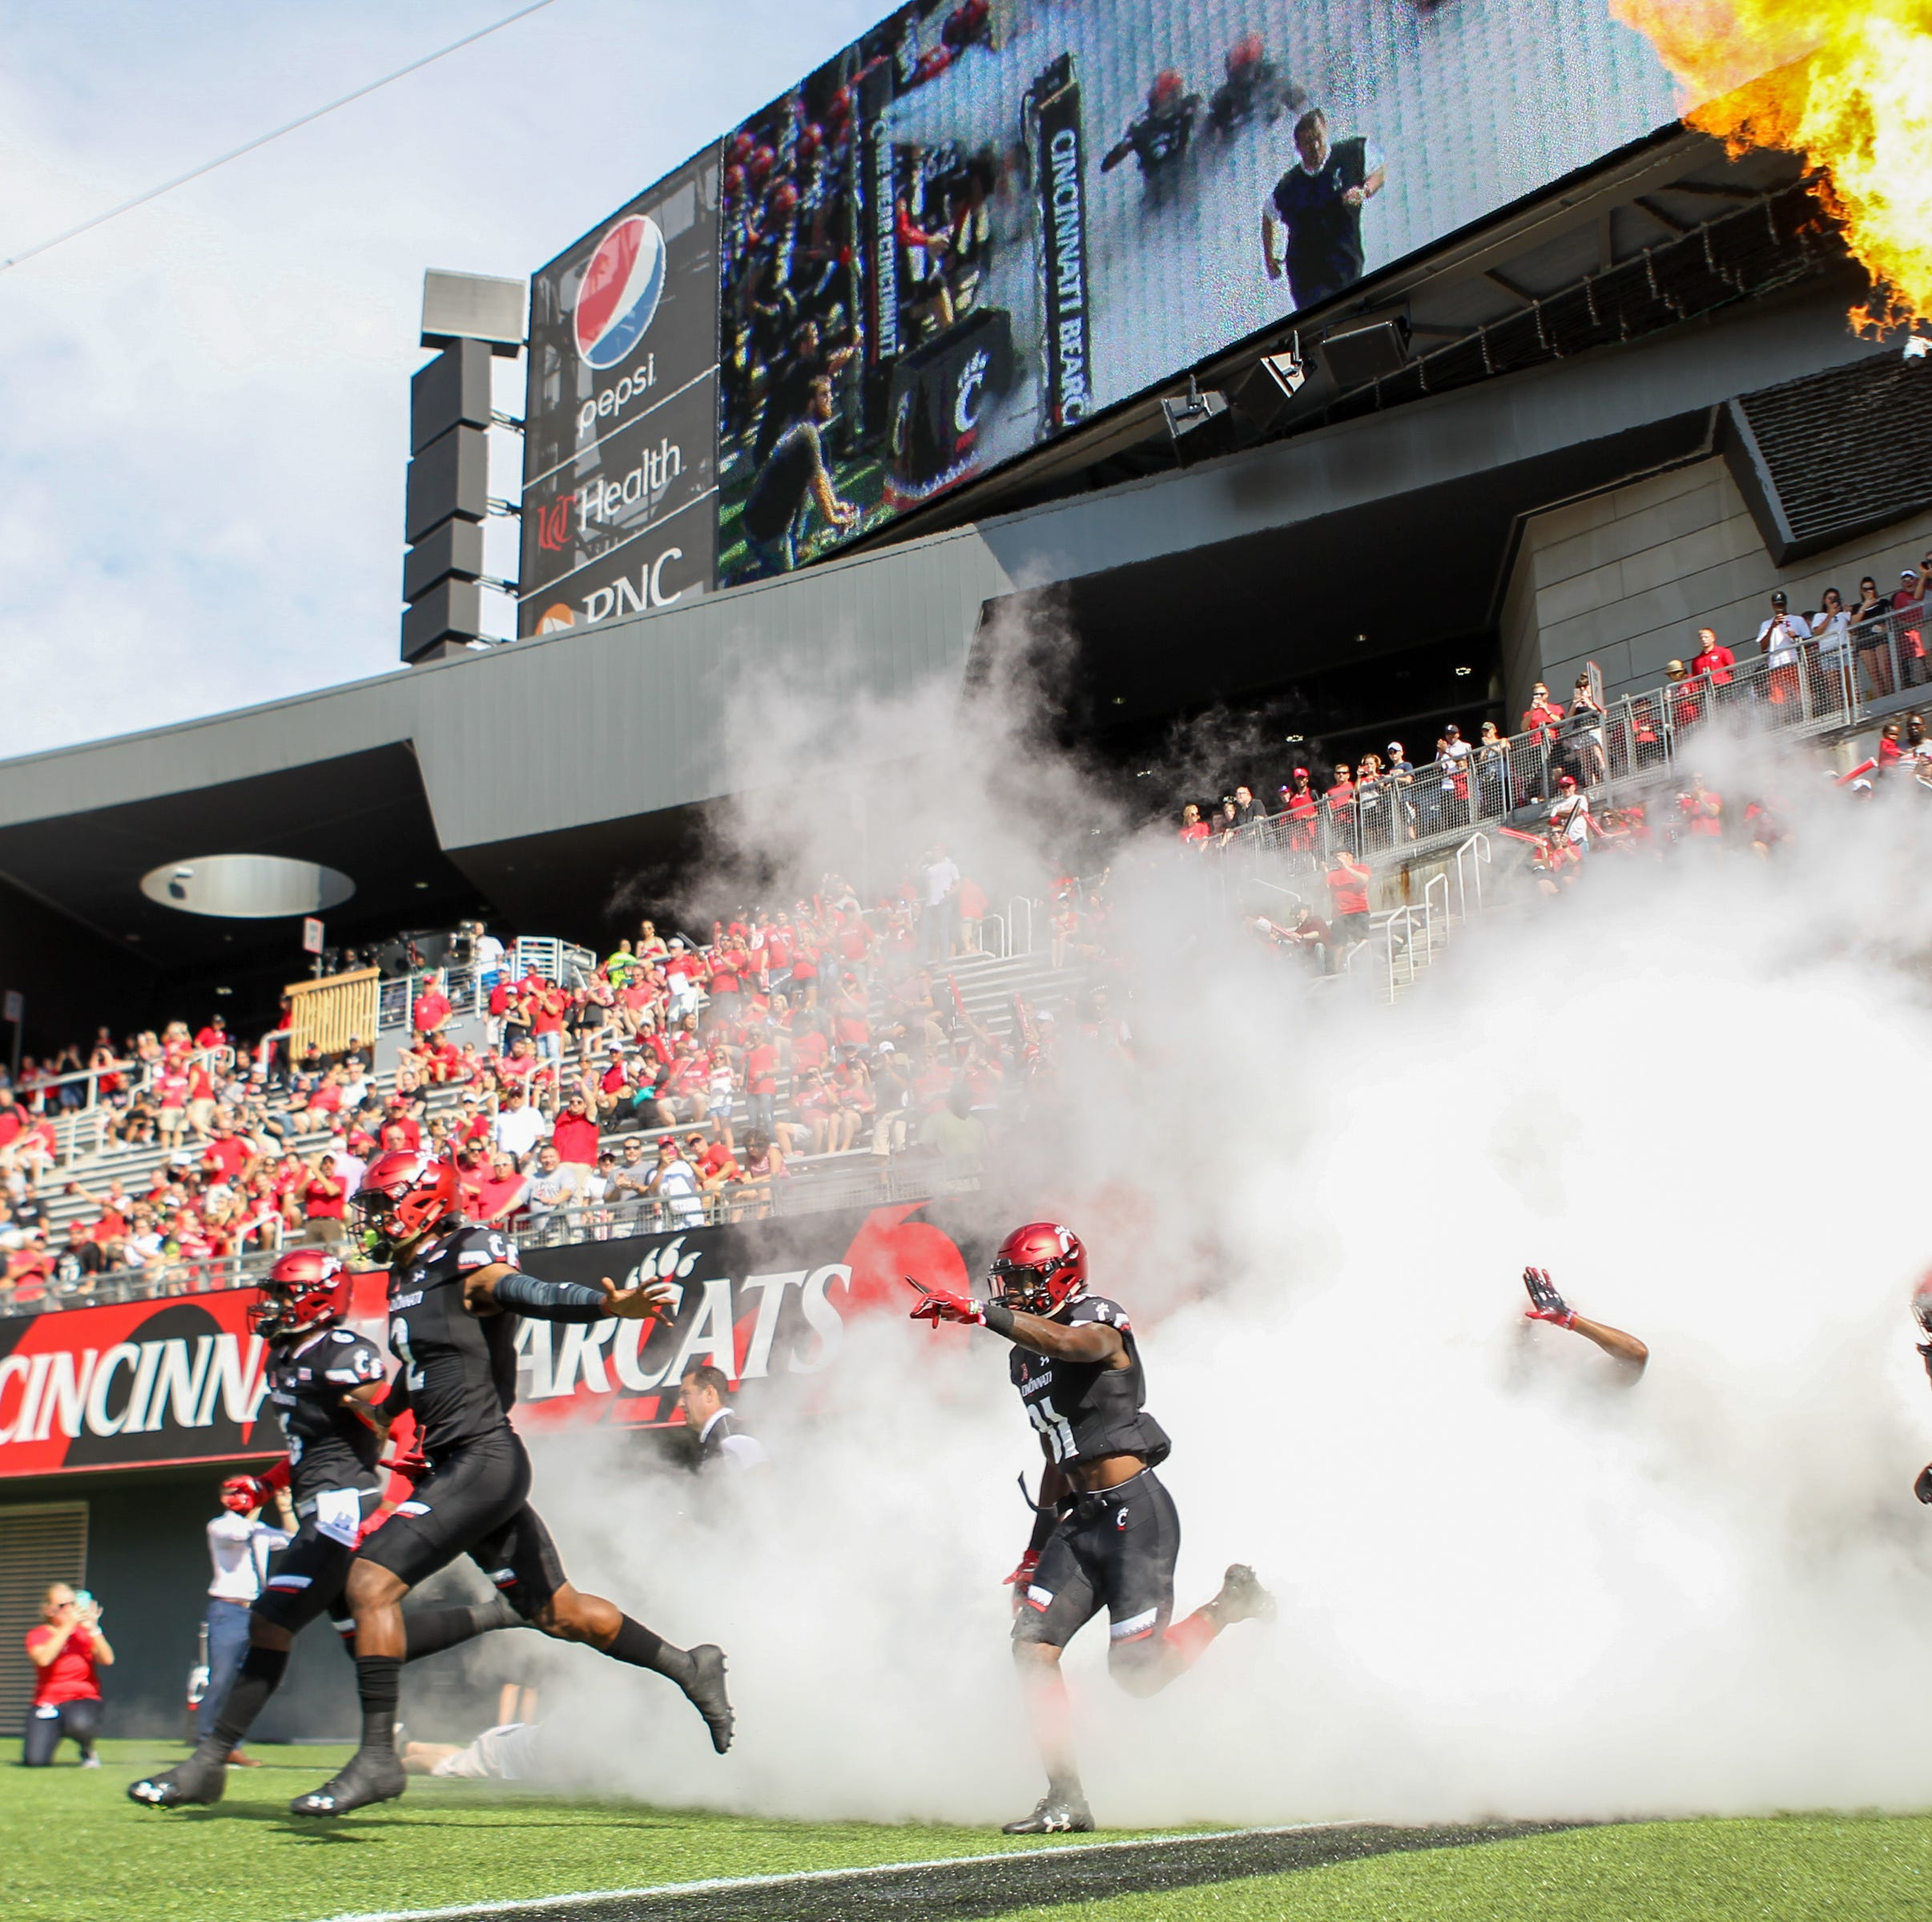 UC Bearcats climb in Top 25 college football polls despite bye